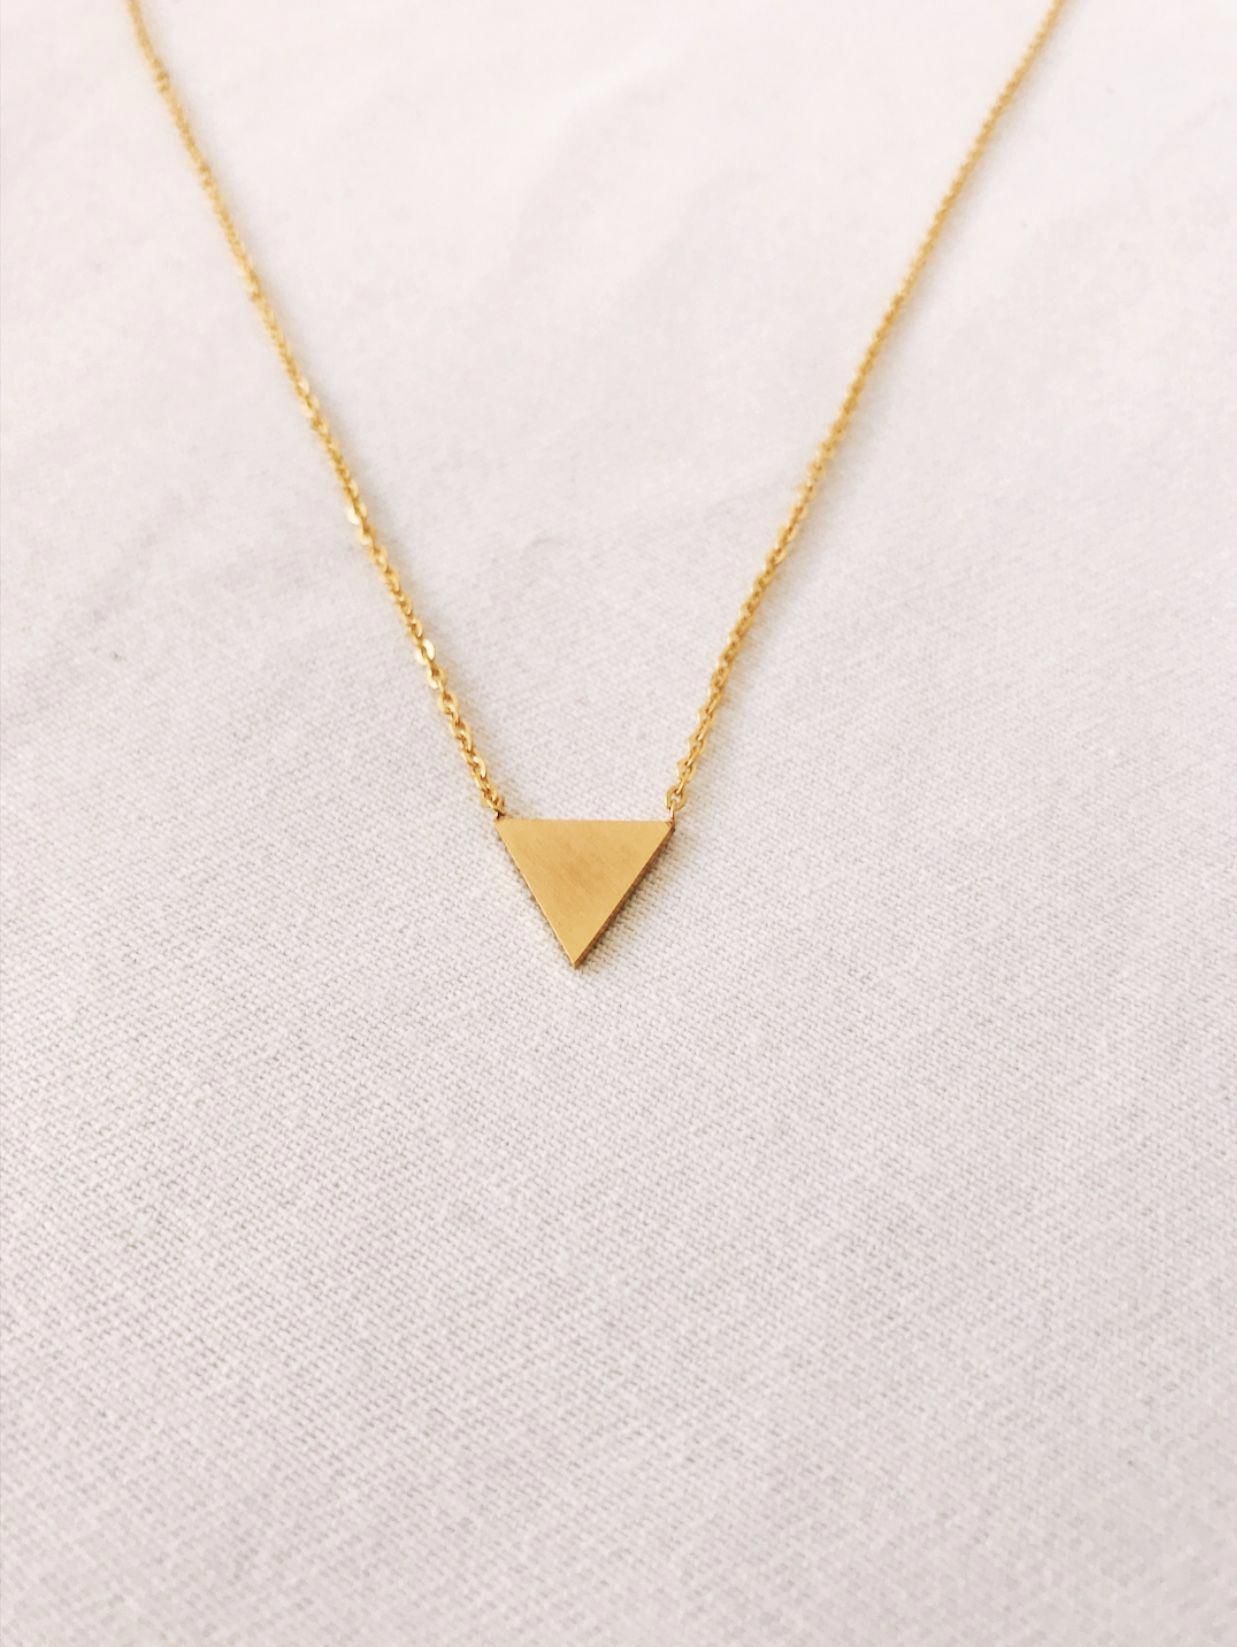 Get To The Point And Make A Statement With This Little Gold Triangle Necklace This Statement Neck Gold Triangle Necklace Star Charm Necklace Triangle Necklace